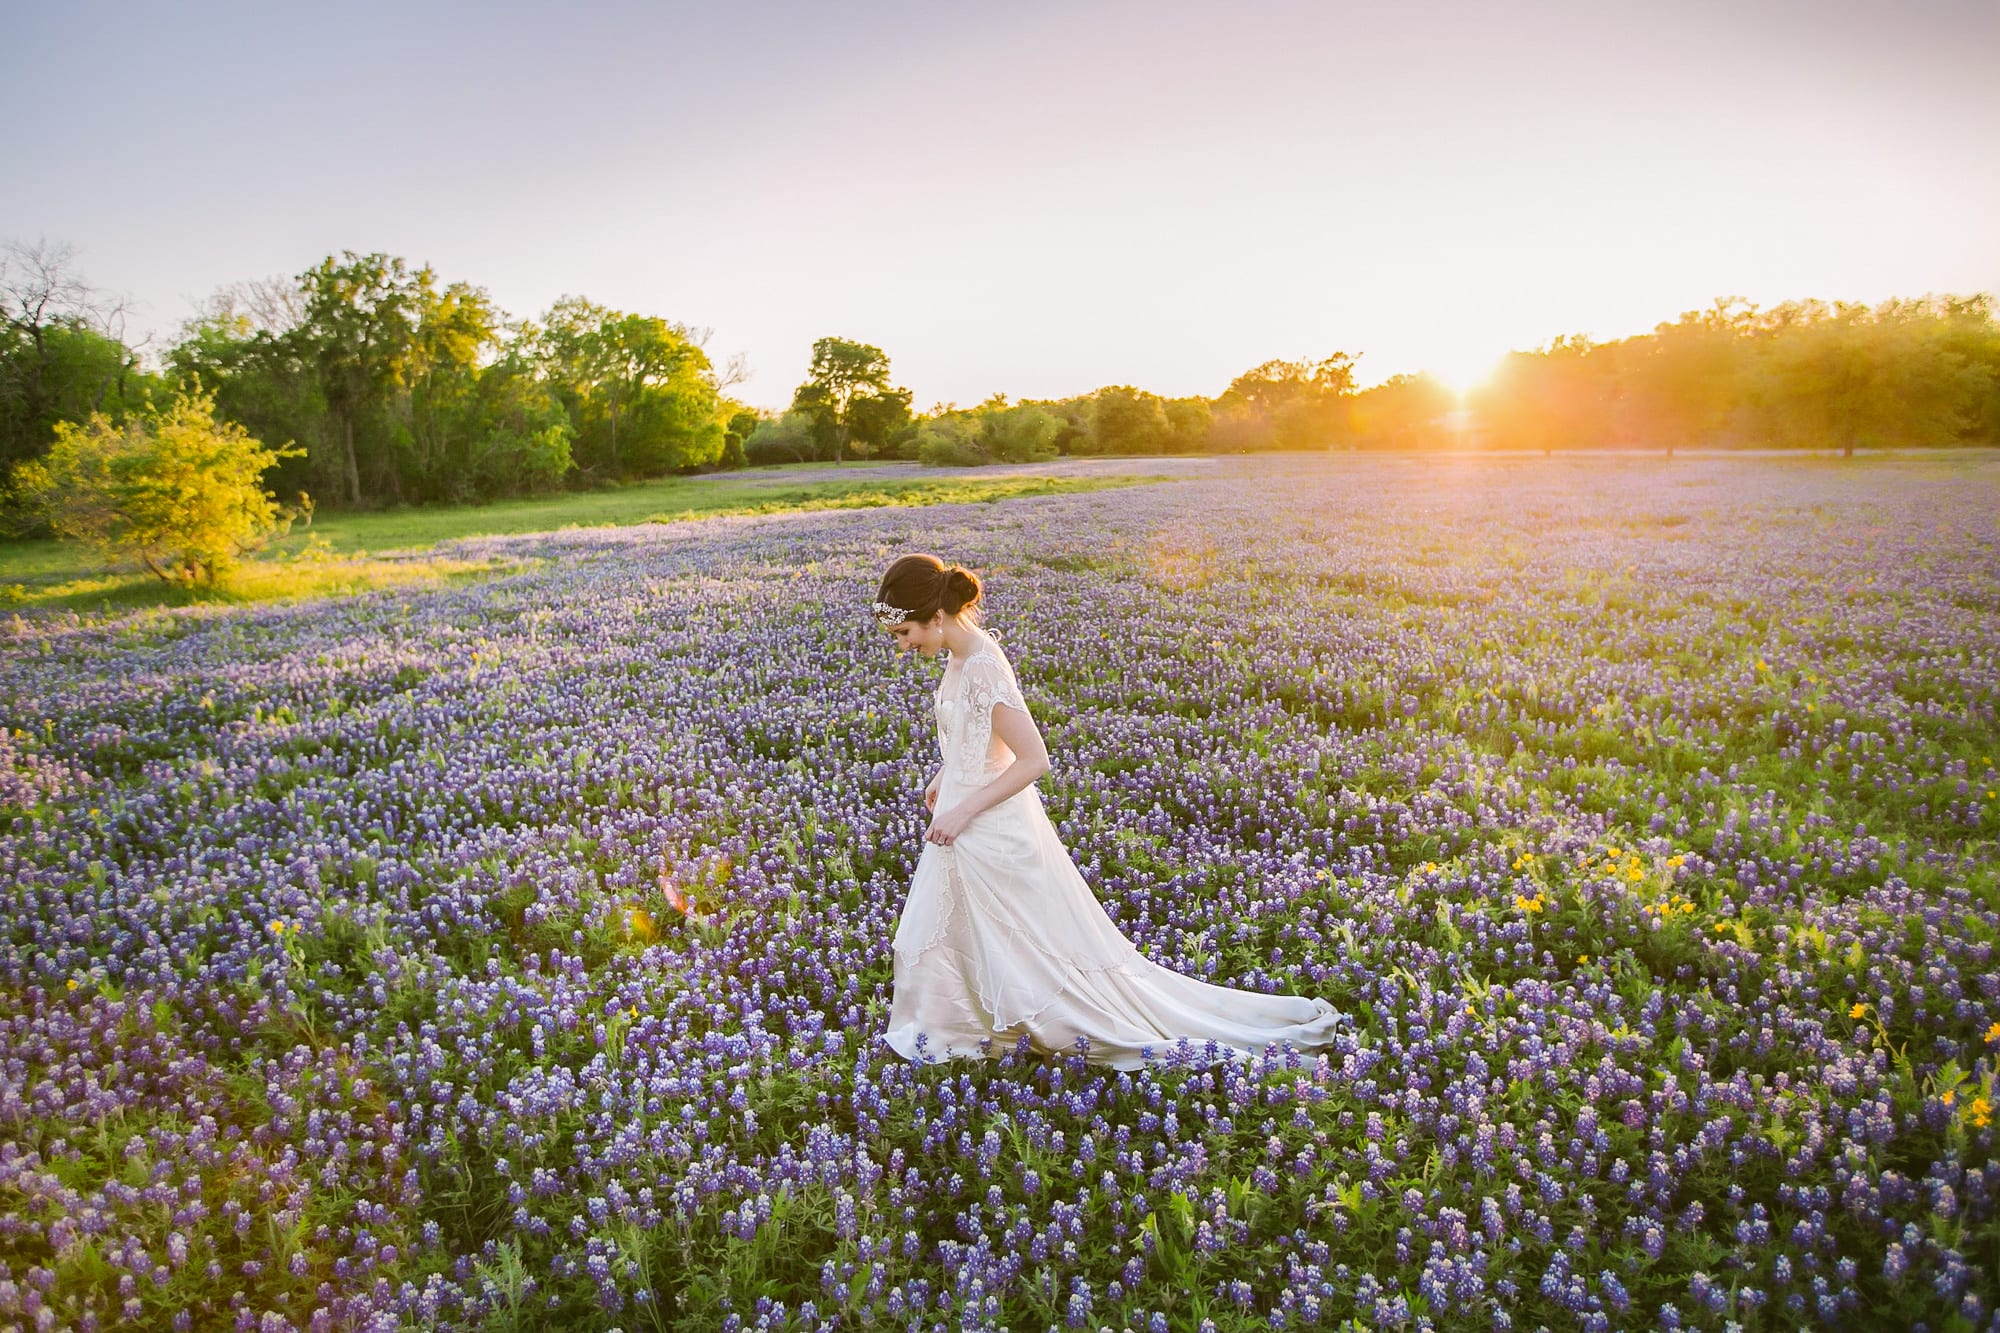 Bride walks through field of bluebonnets at sunset